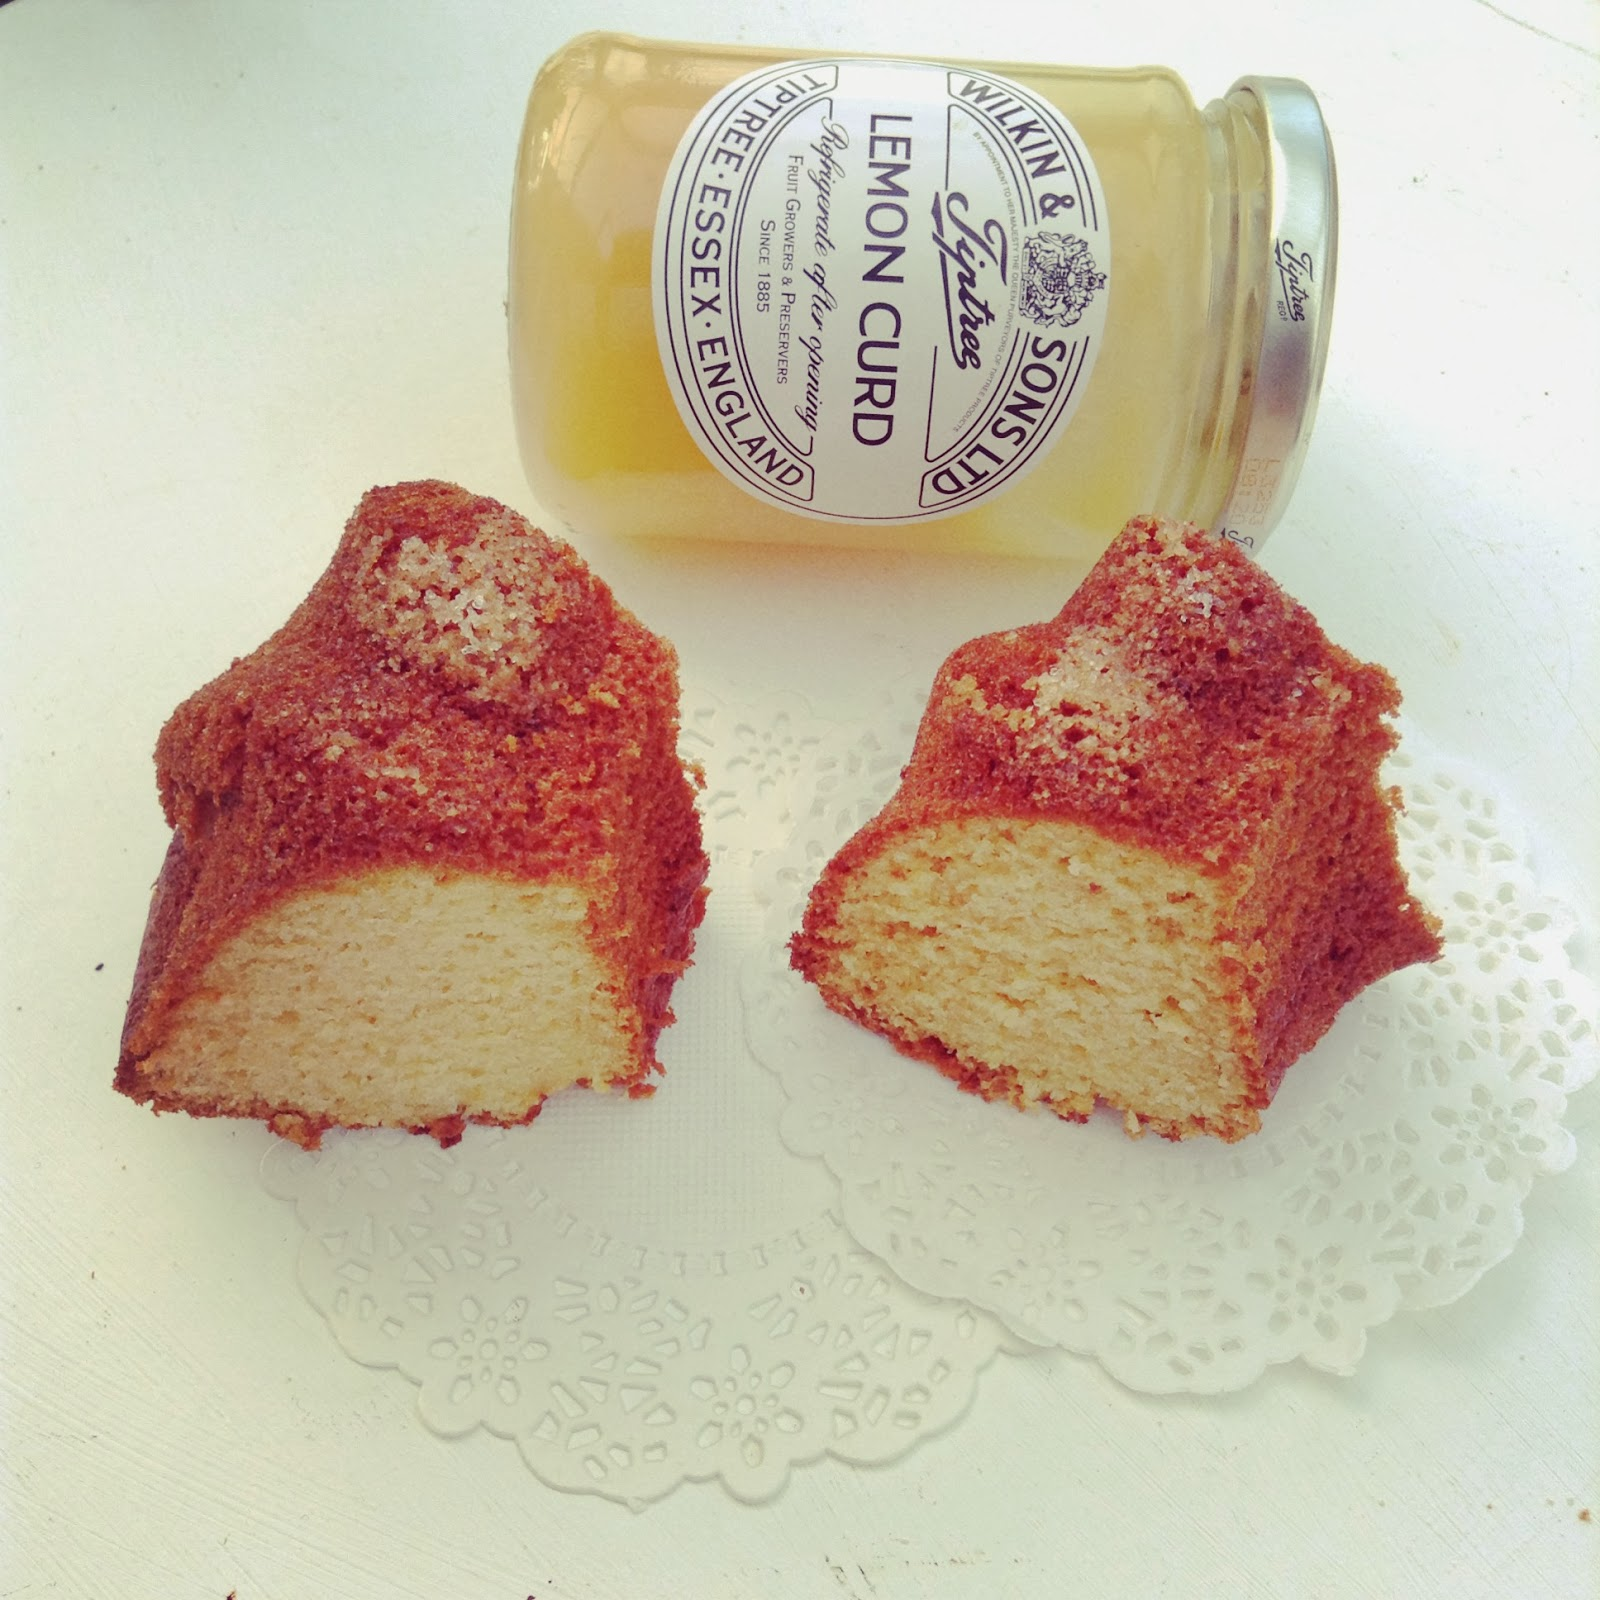 lemon curd wilkin & sons gâteau citron